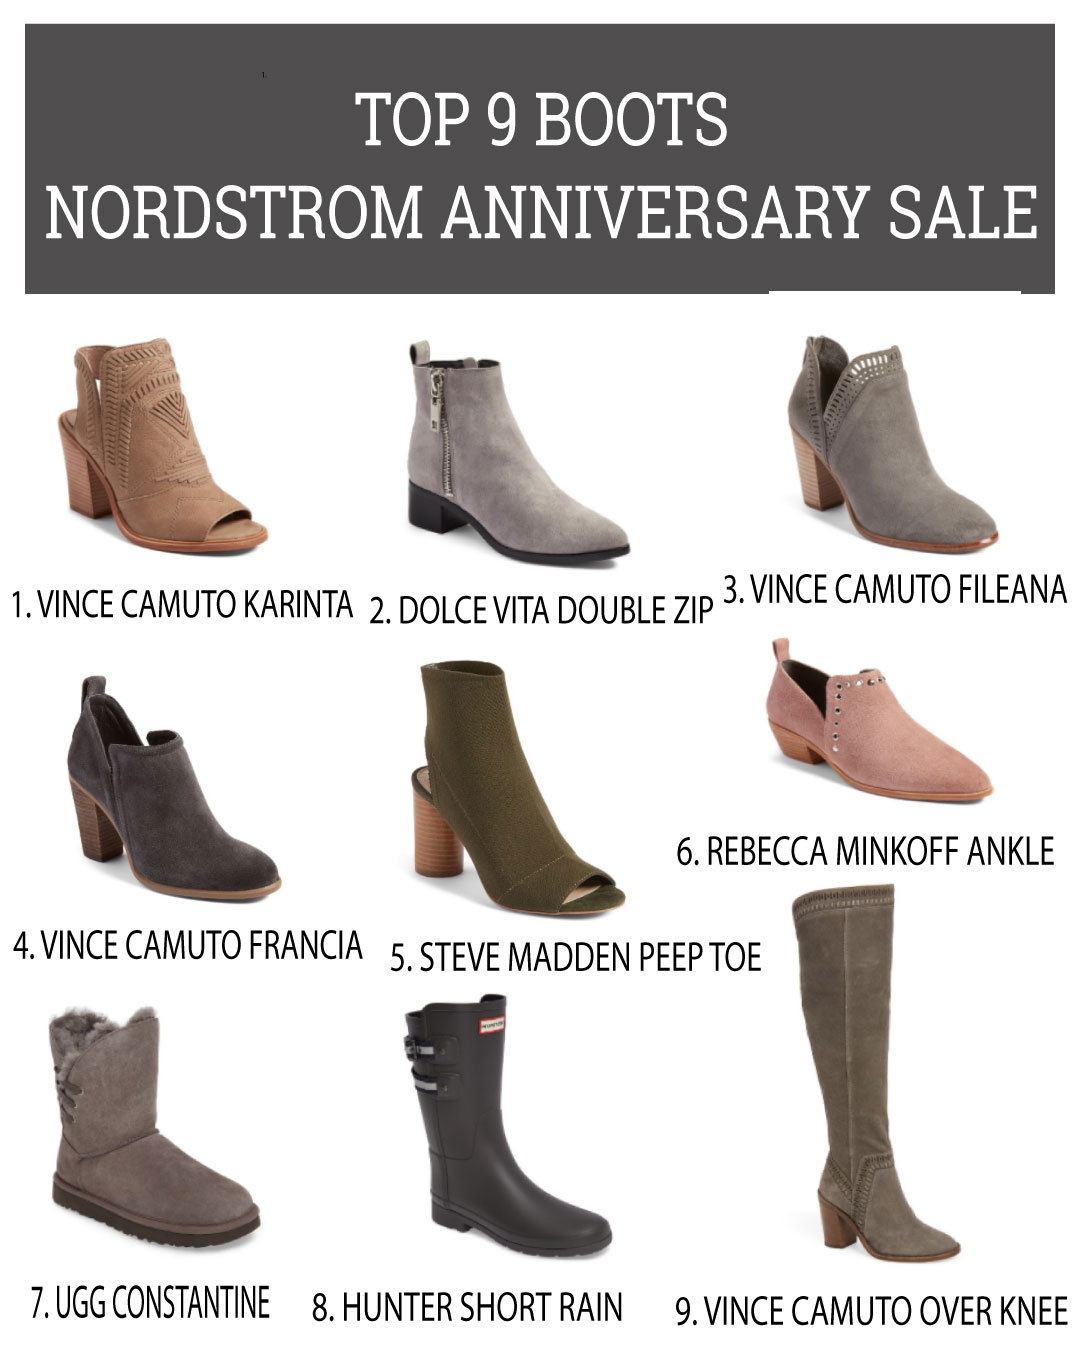 3ac7d3e24 2017 Nordstrom Anniversary Sale Best Boots- Life By Lee